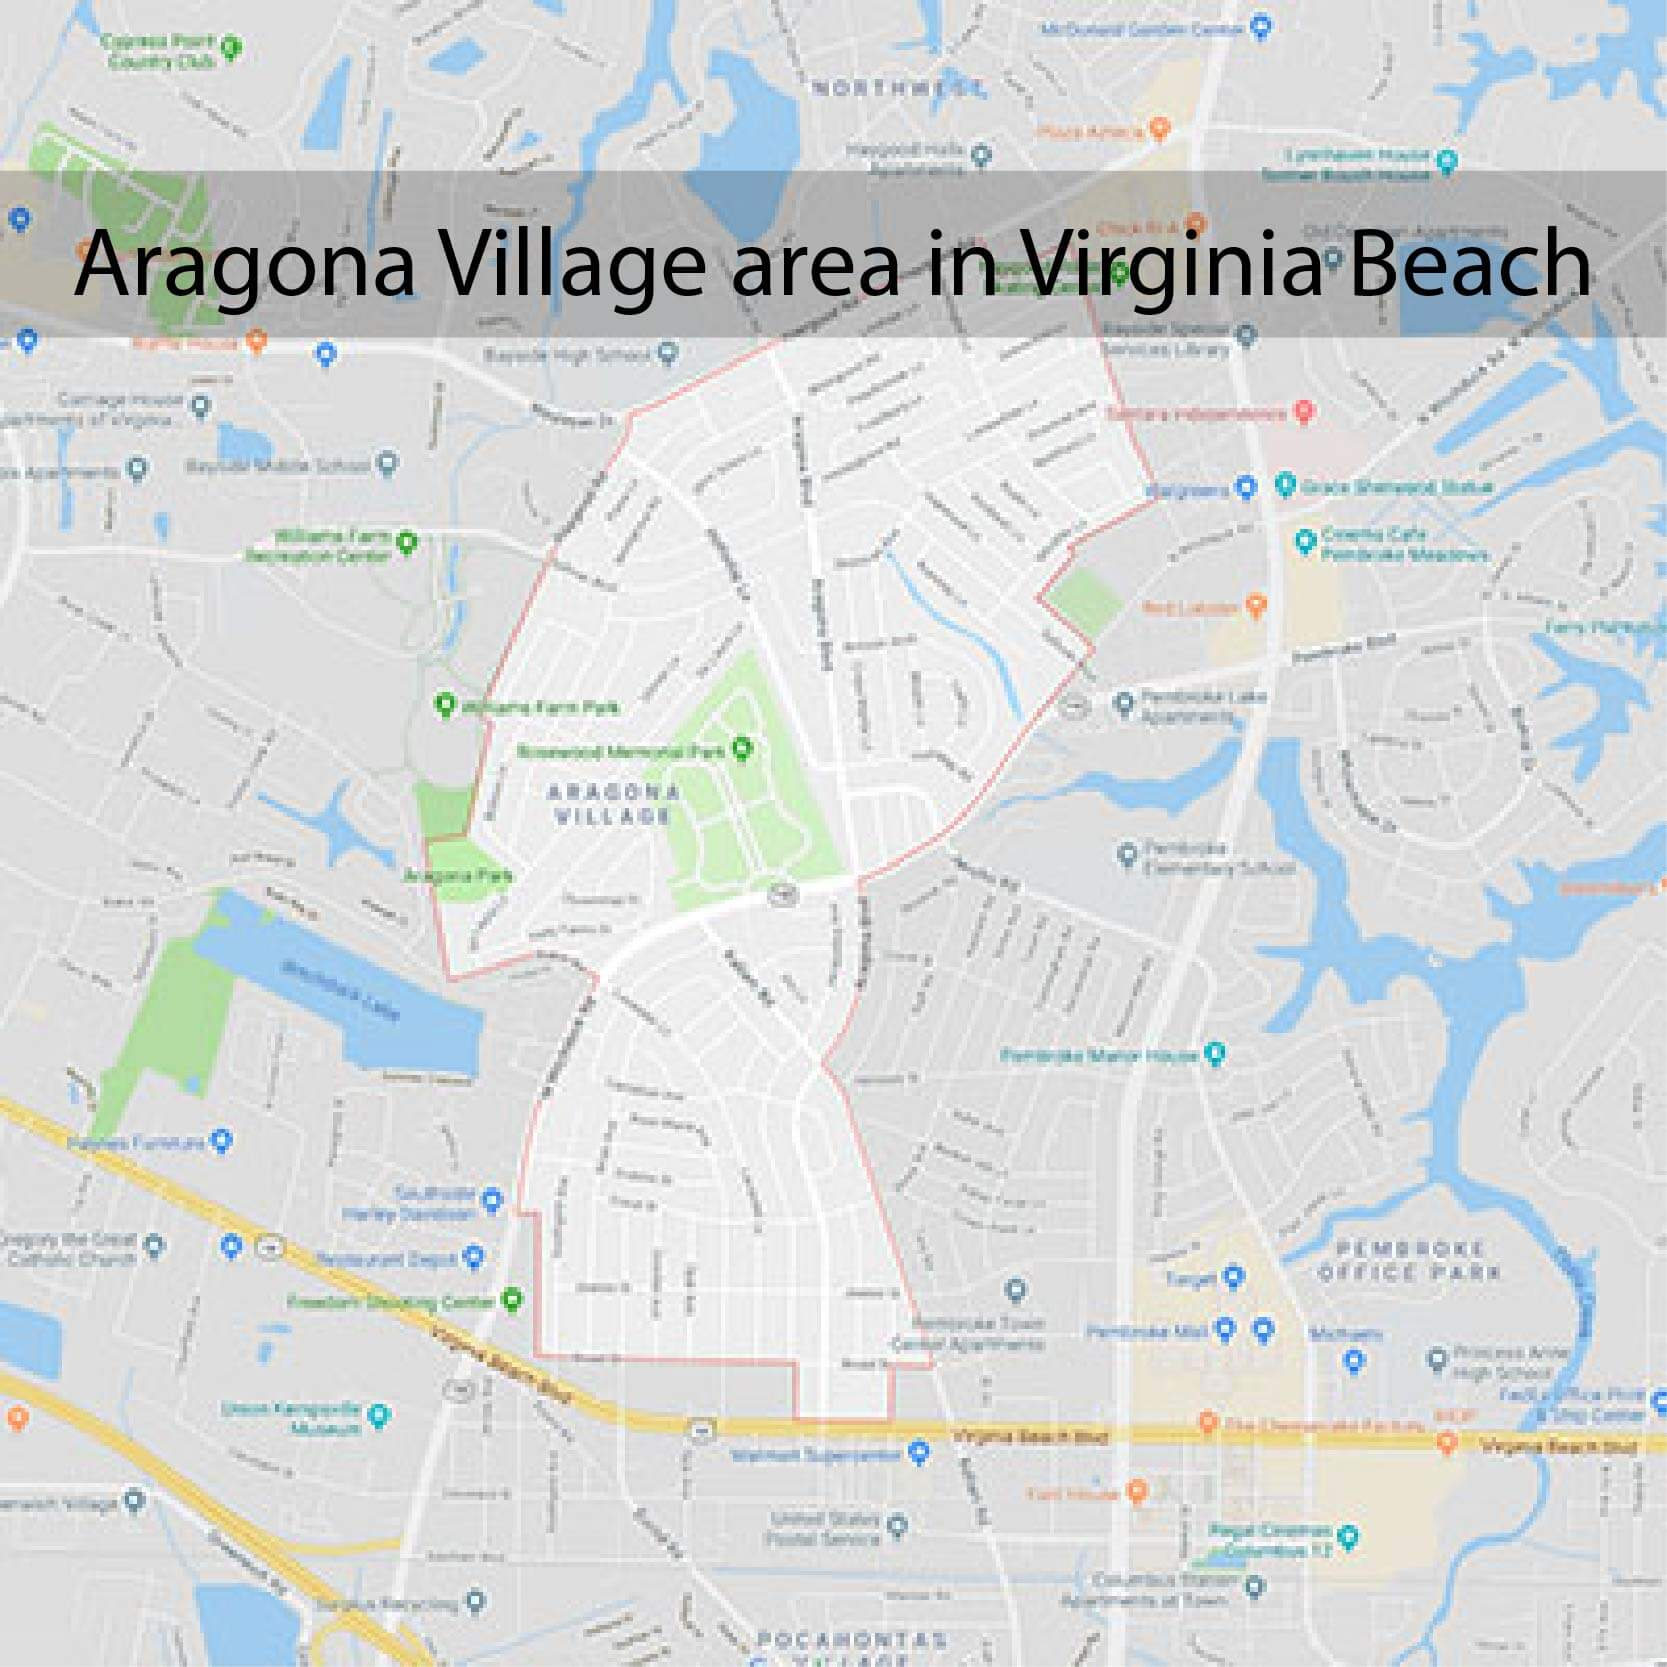 Aragona Village Real Estate Homes Condos For Sale